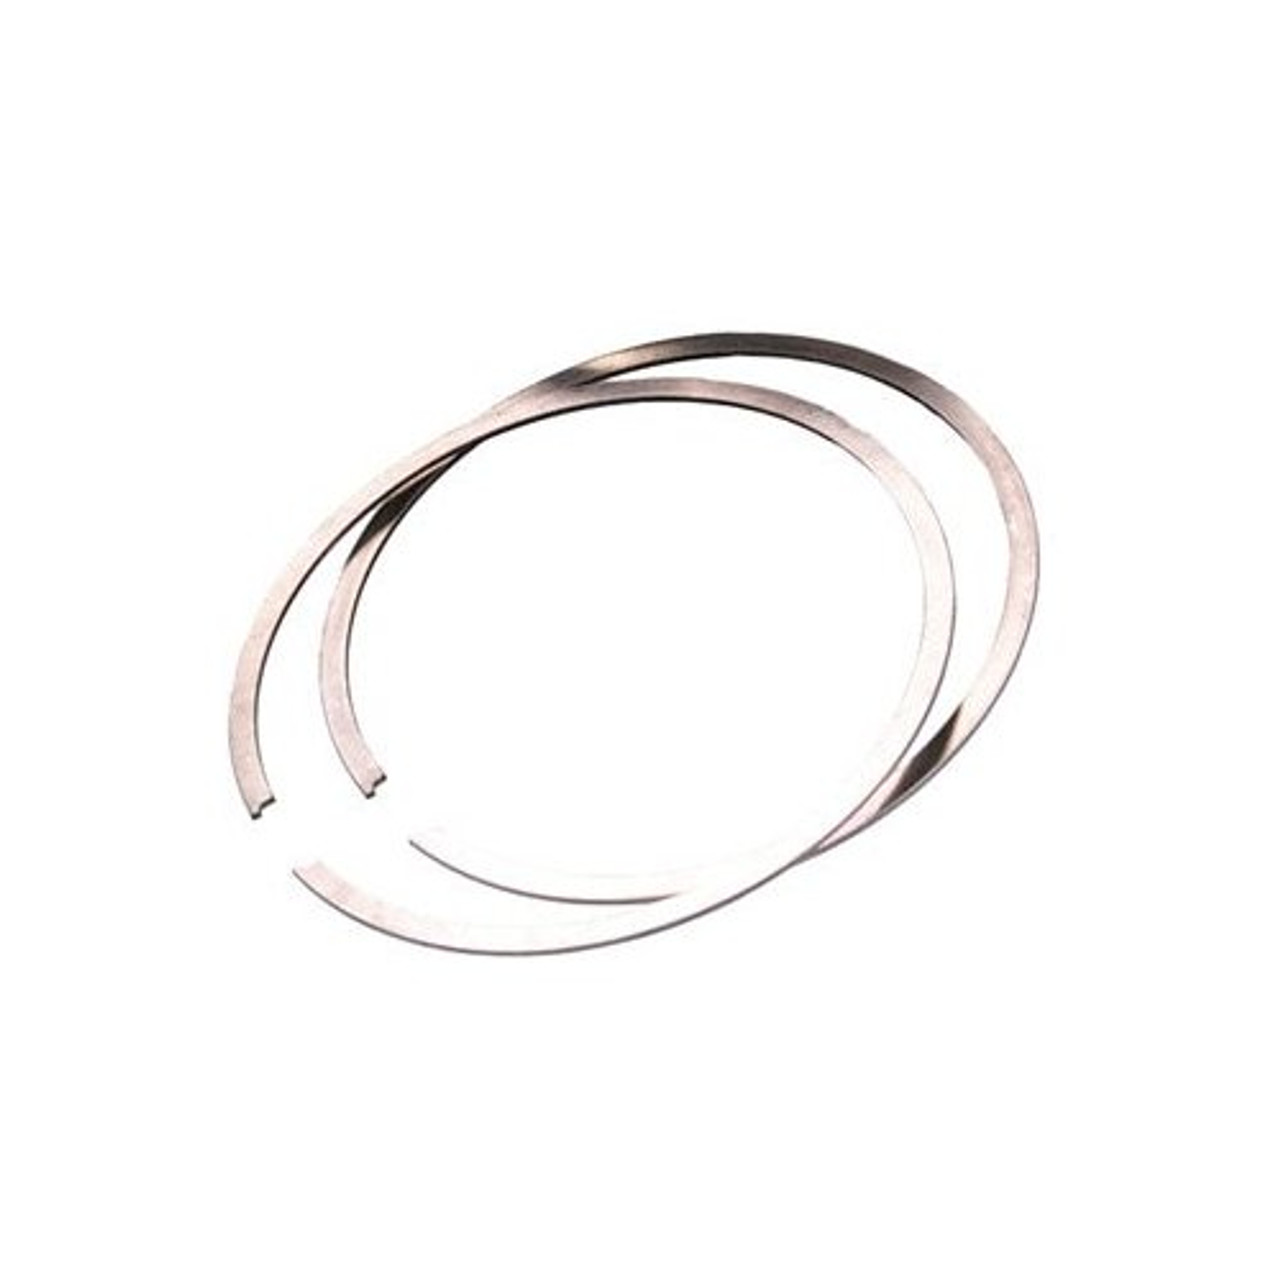 Wiseco 7700XU 0.9mm x 0.8mm x 1.5mm Ring Set for 77.00mm Cylinder Bore